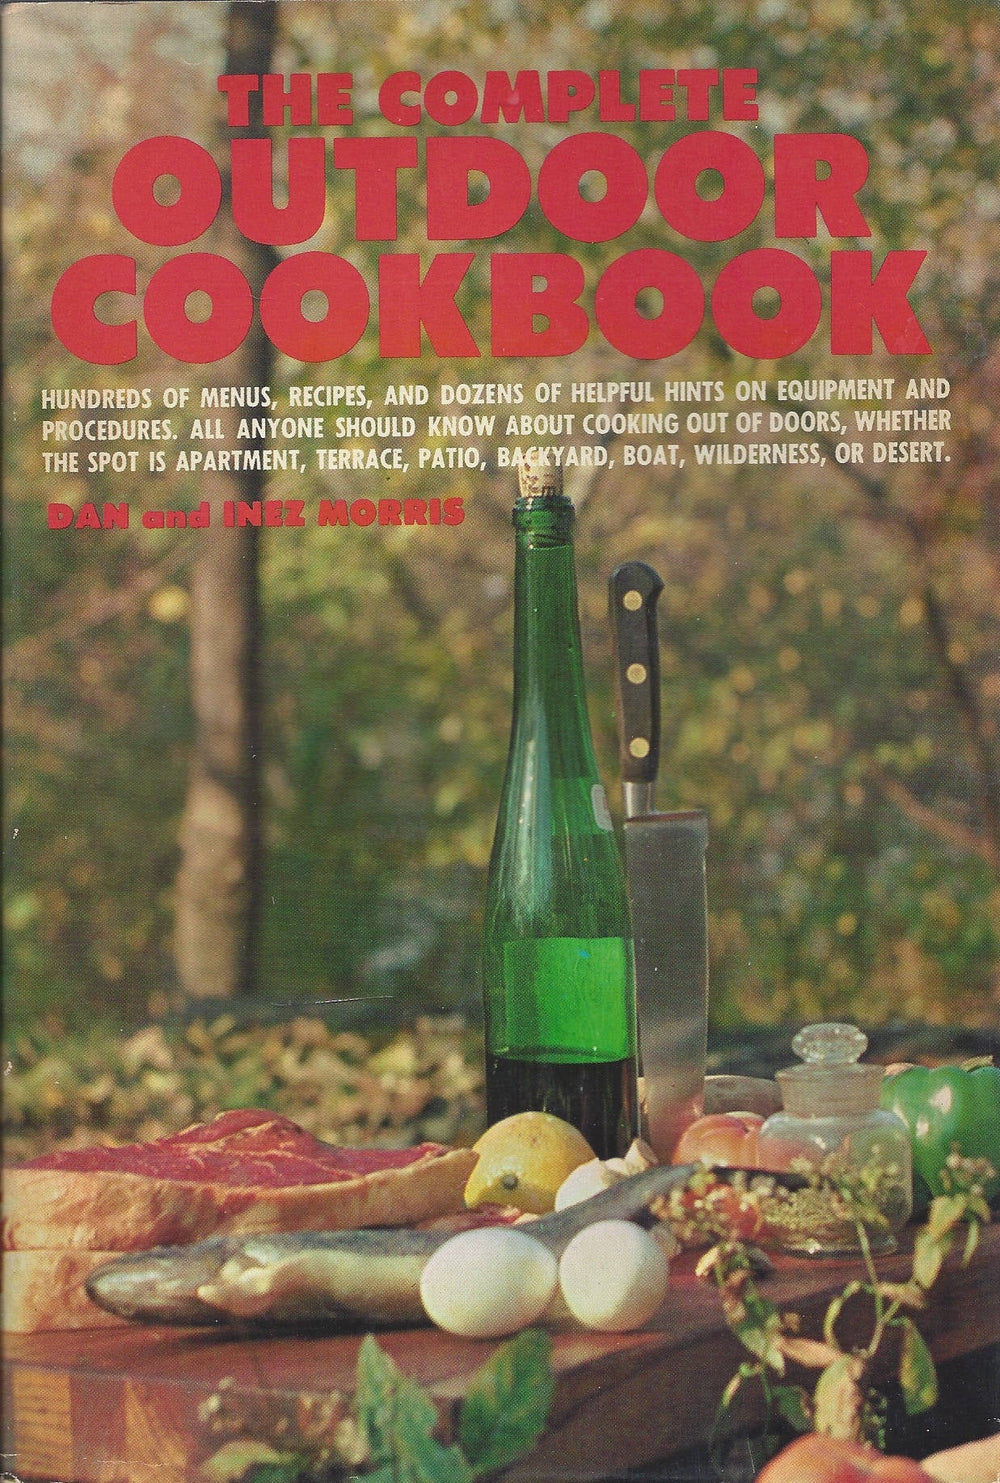 The complete outdoor cookbook, by Dan and Inez Morris (Hardcover)